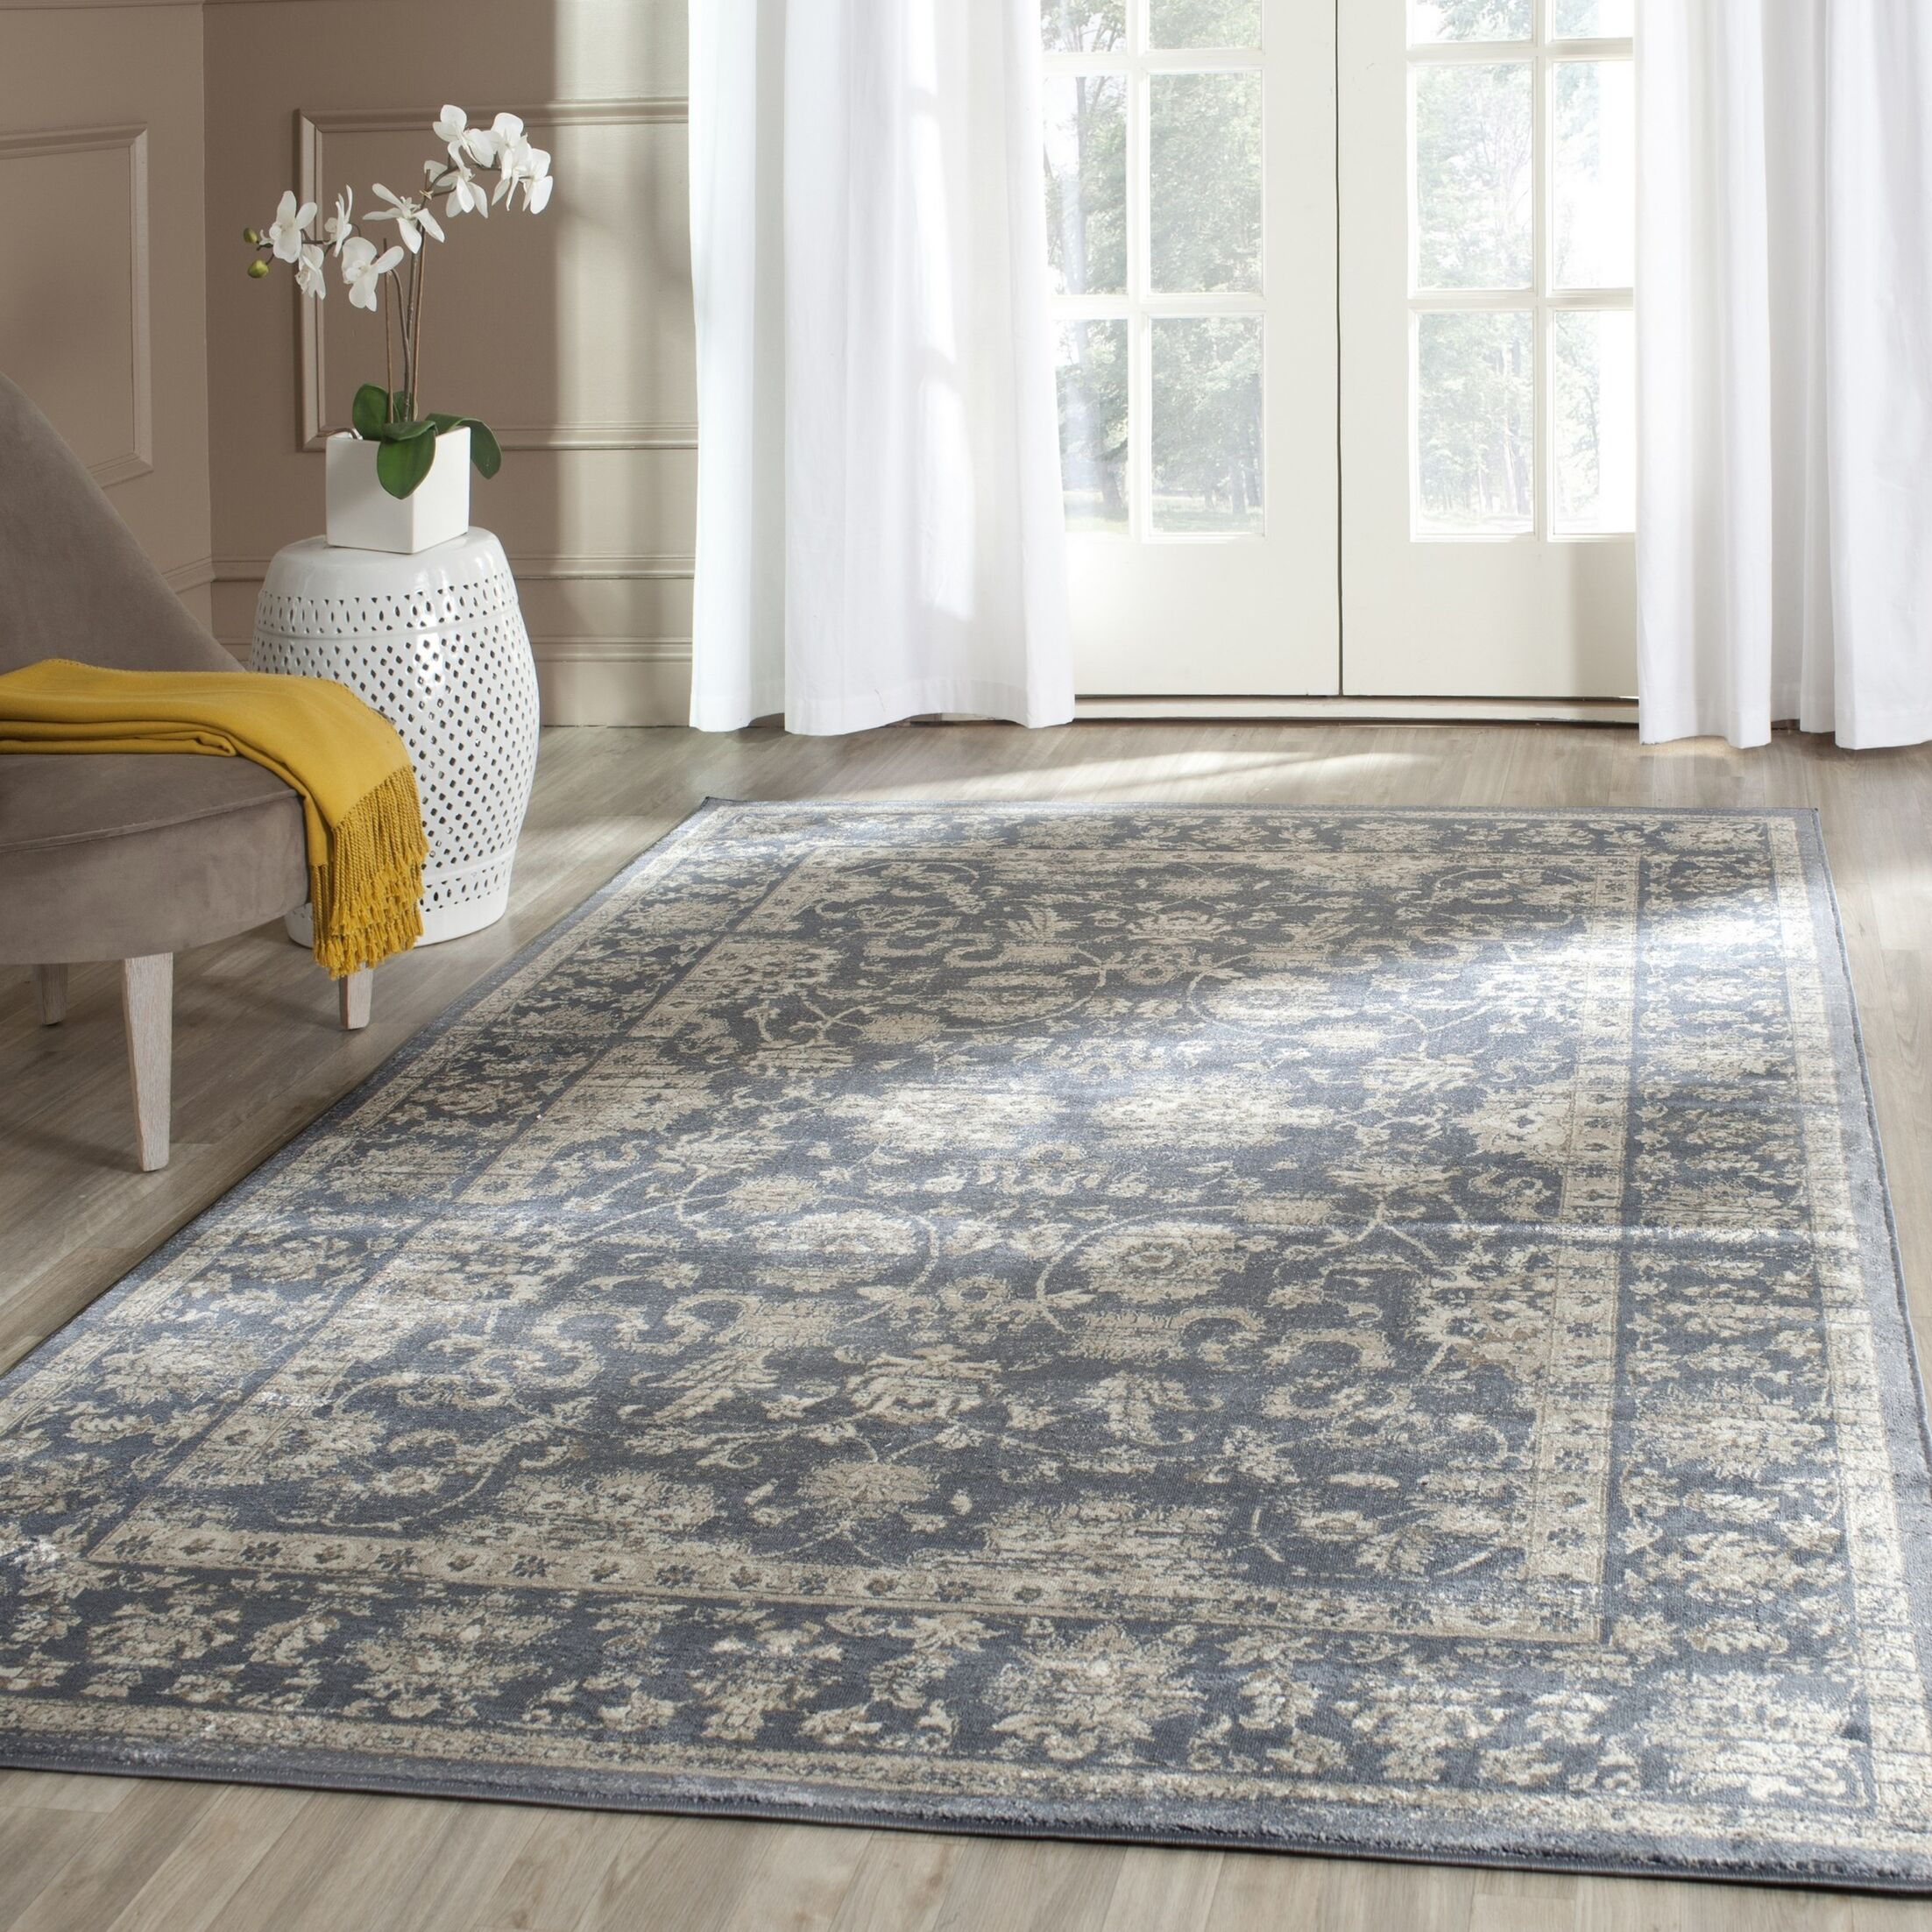 Rindge Dark Blue & Cream Area Rug Rug Size: Rectangle 3' x 5'